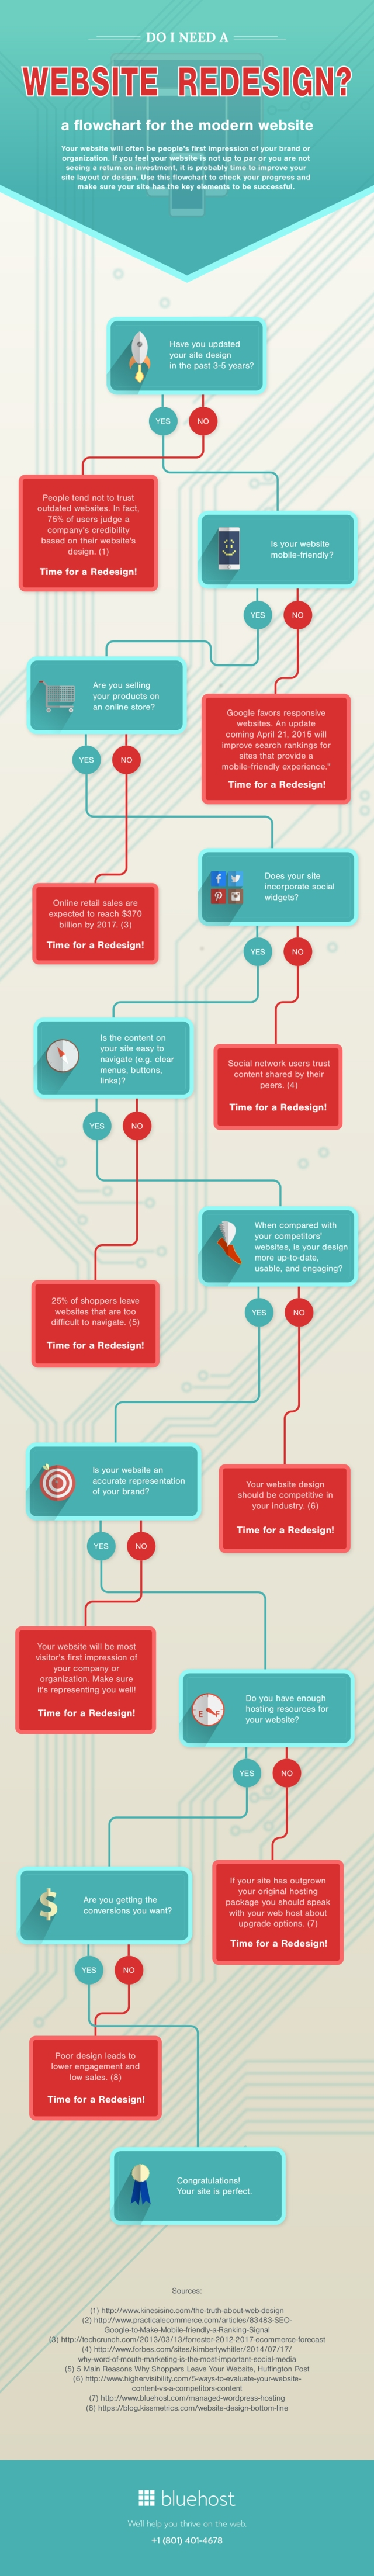 Do You Need a Website Redesign? This Flowchart Will Tell You